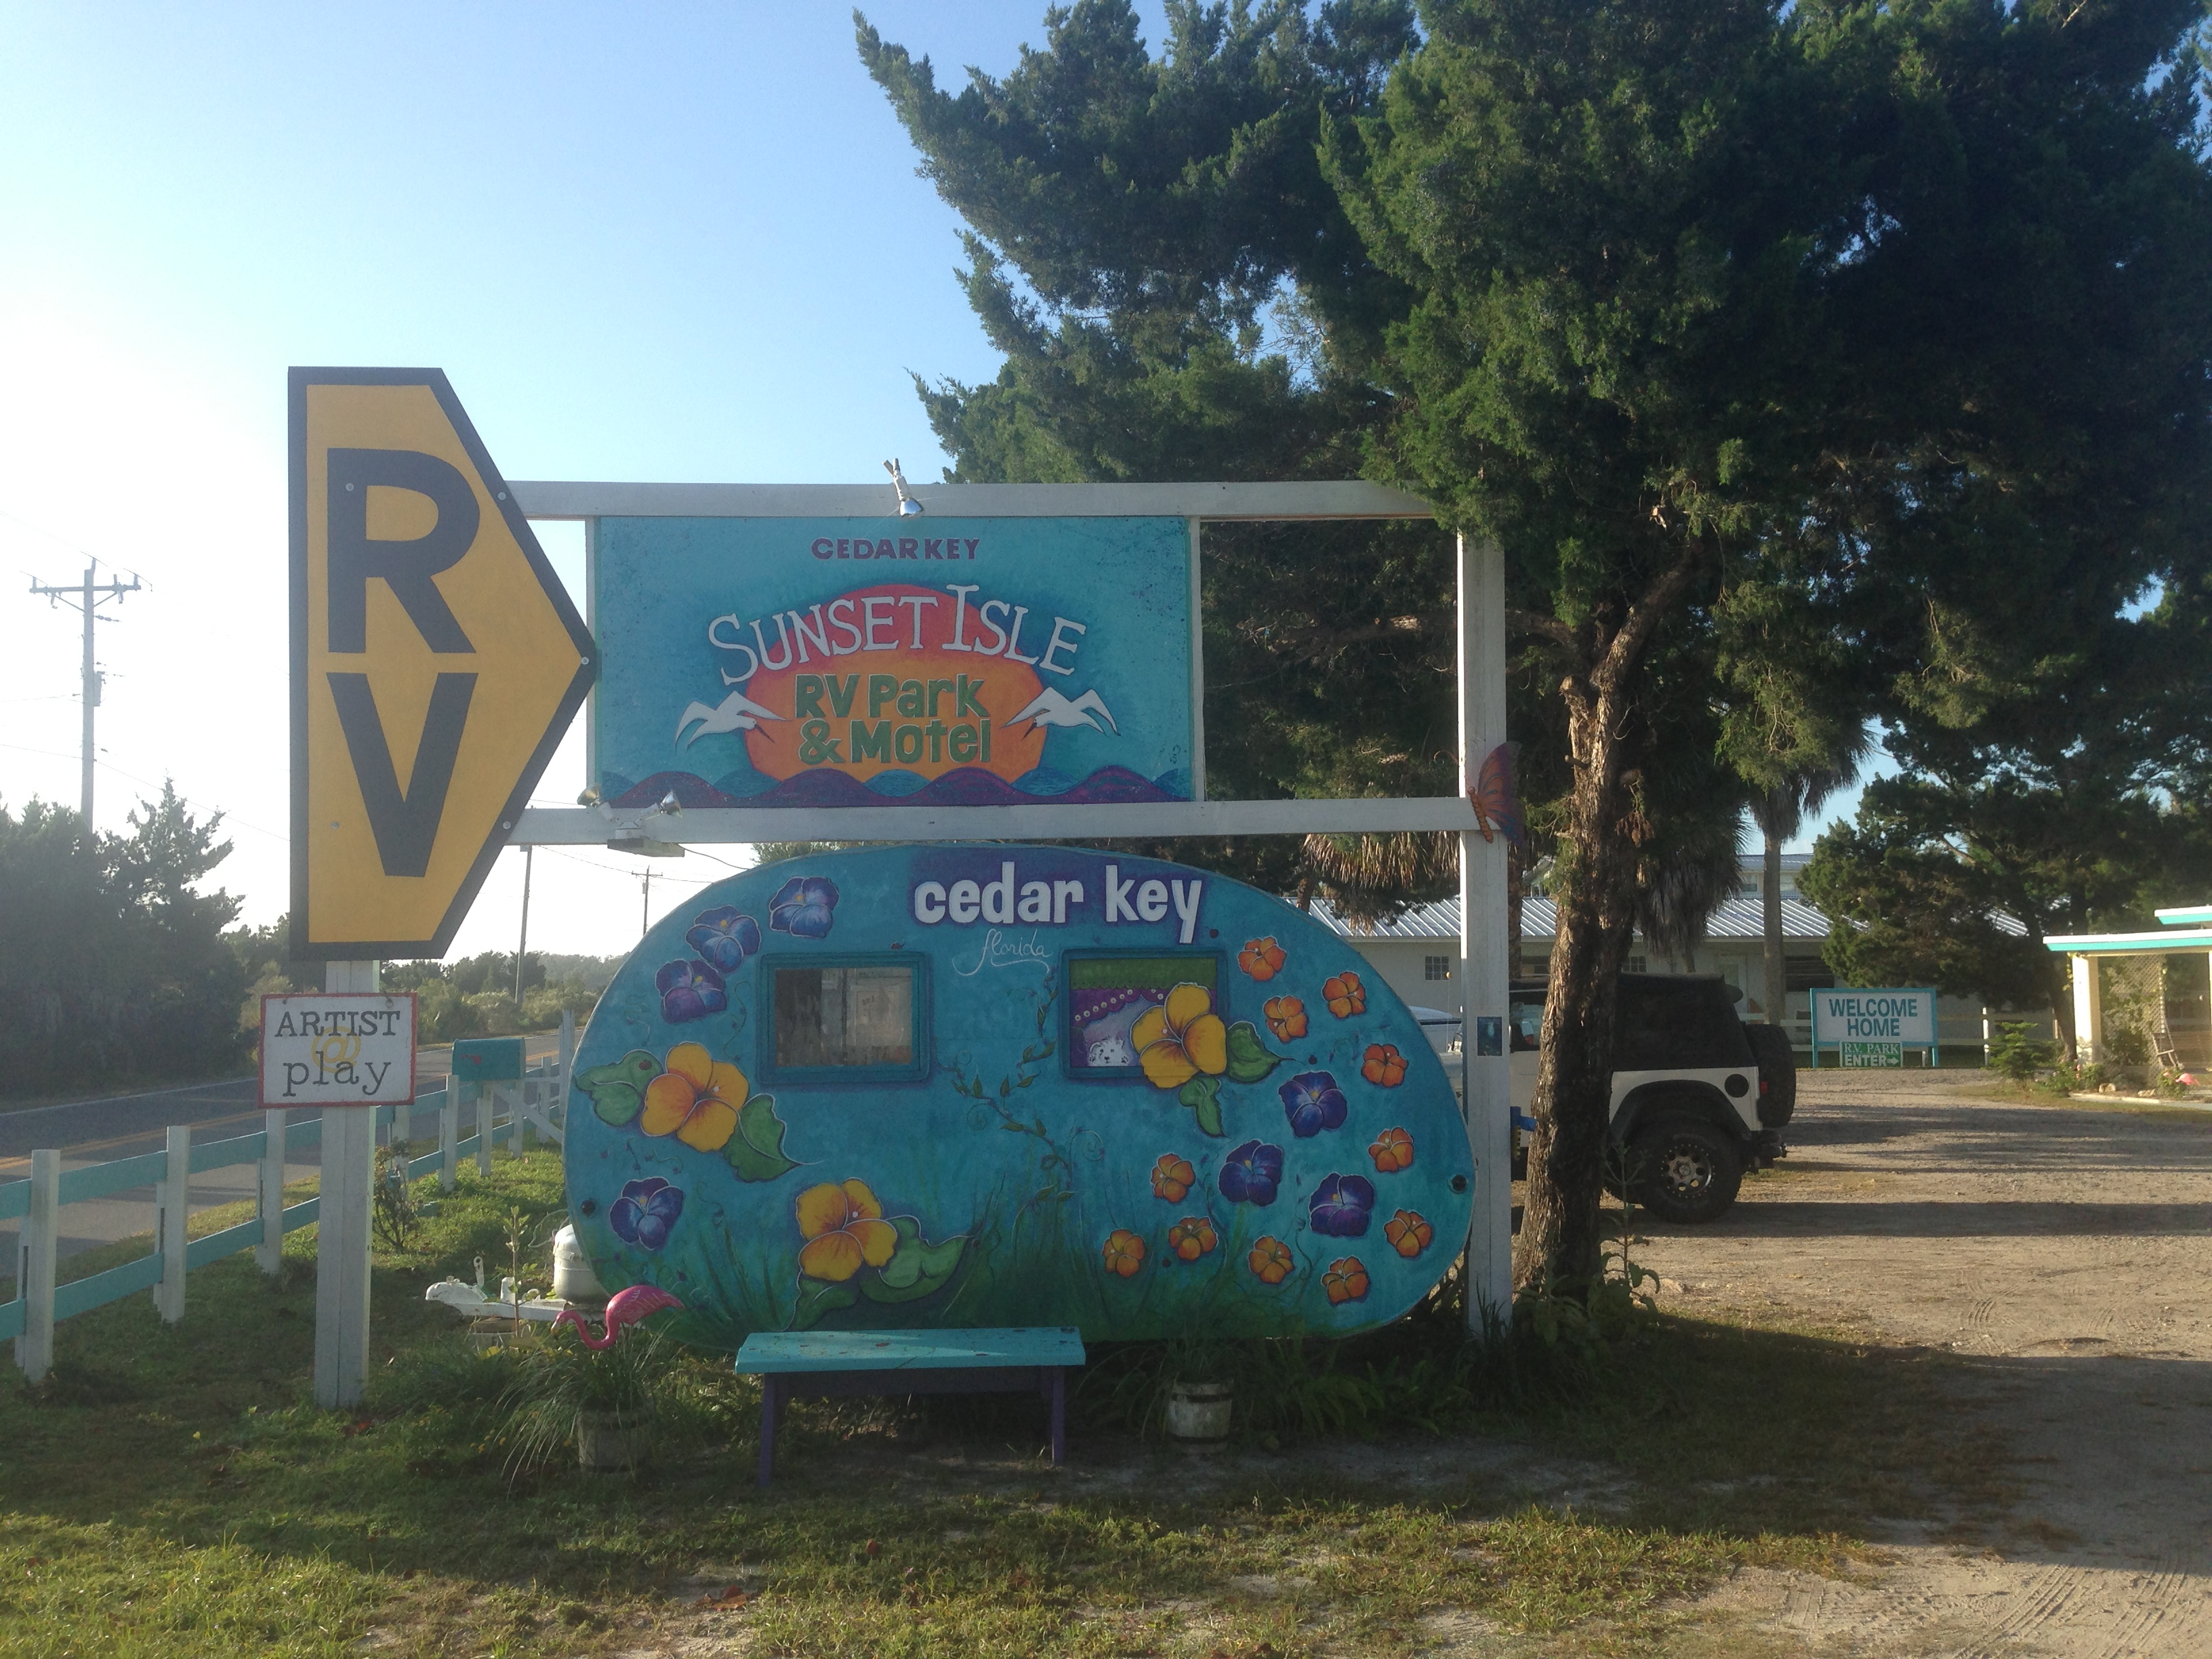 It is all fun in cedar key and this sign for the sunset isle rv park